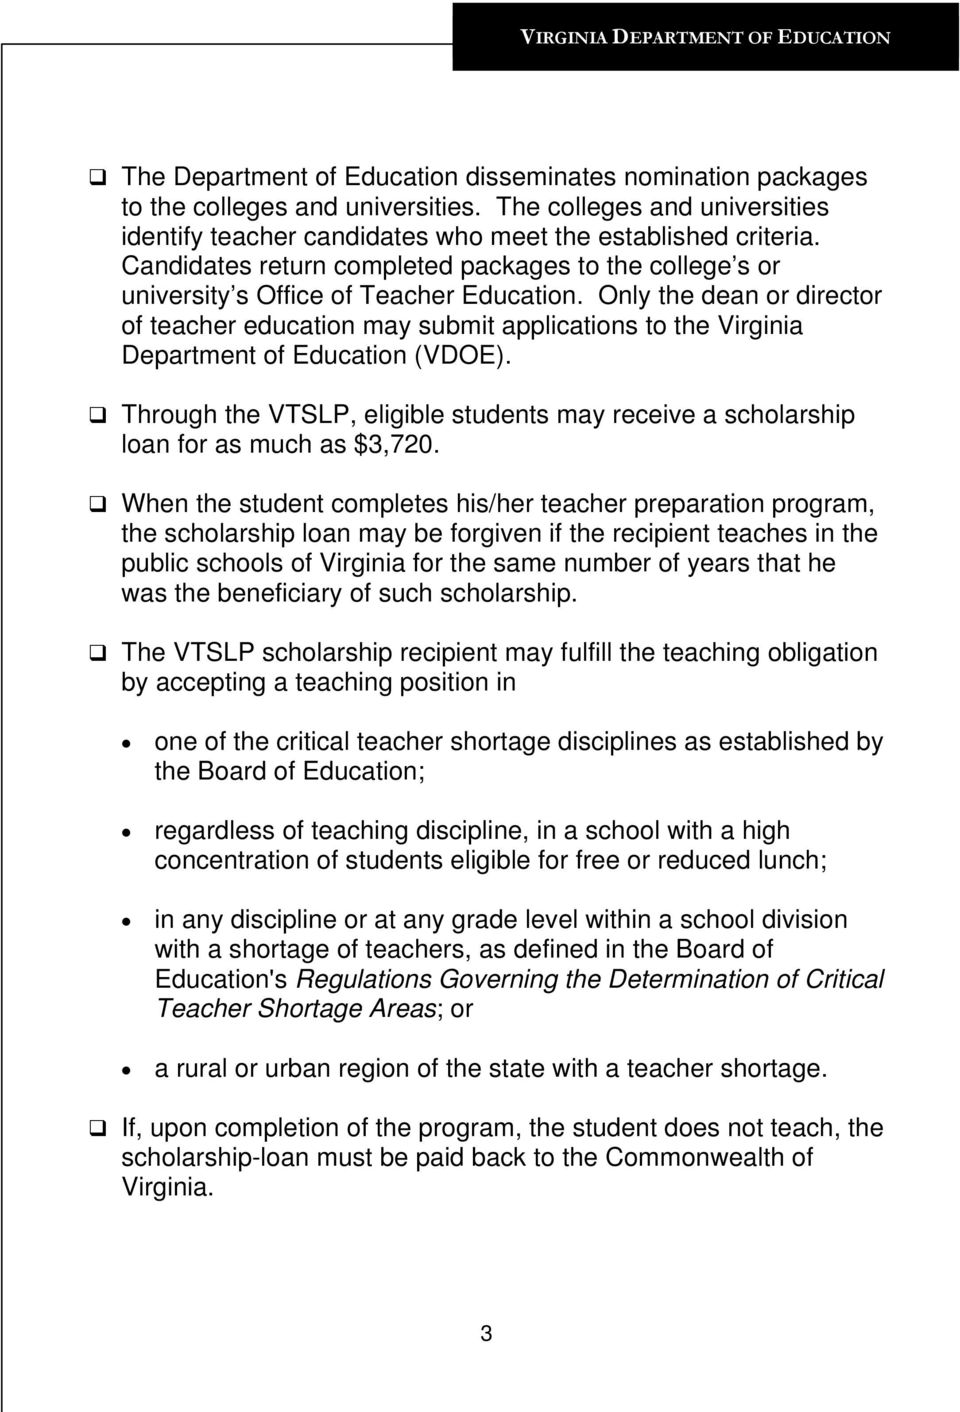 Only the dean or director of teacher education may submit applications to the Virginia Department of Education (VDOE).